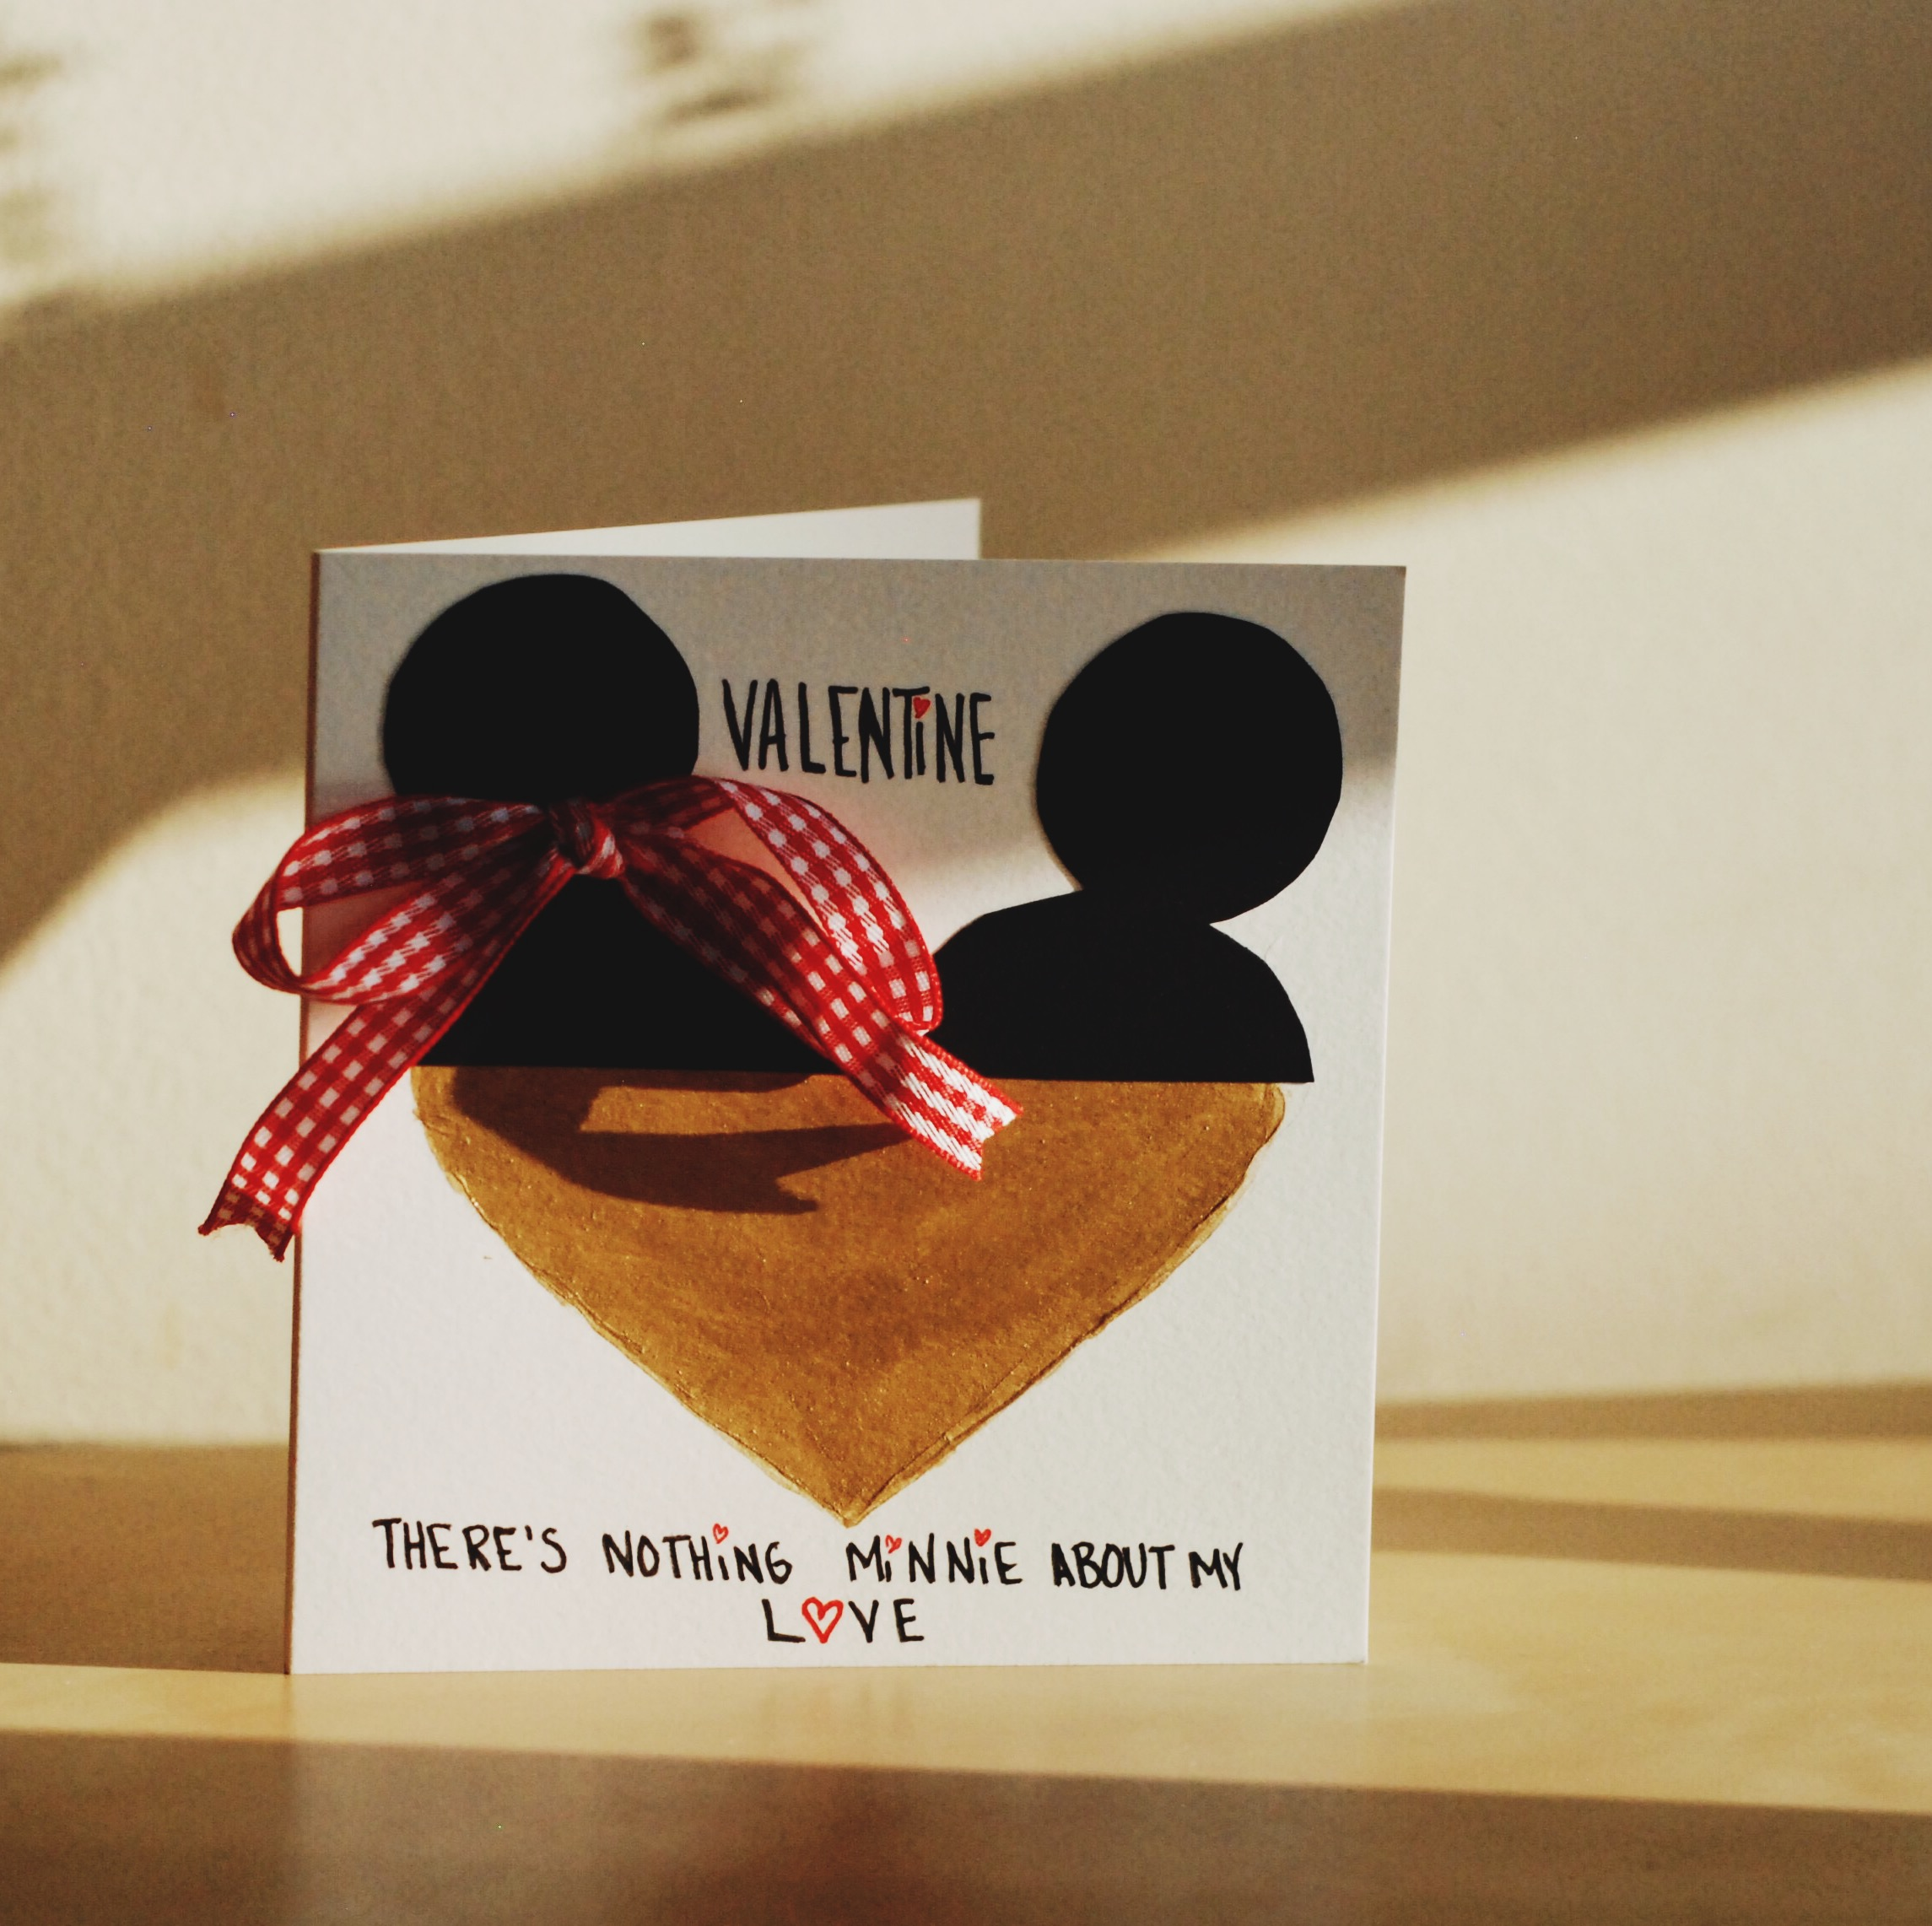 Monthly Mail Club - February 2017 - Minnie Mouse Valentine